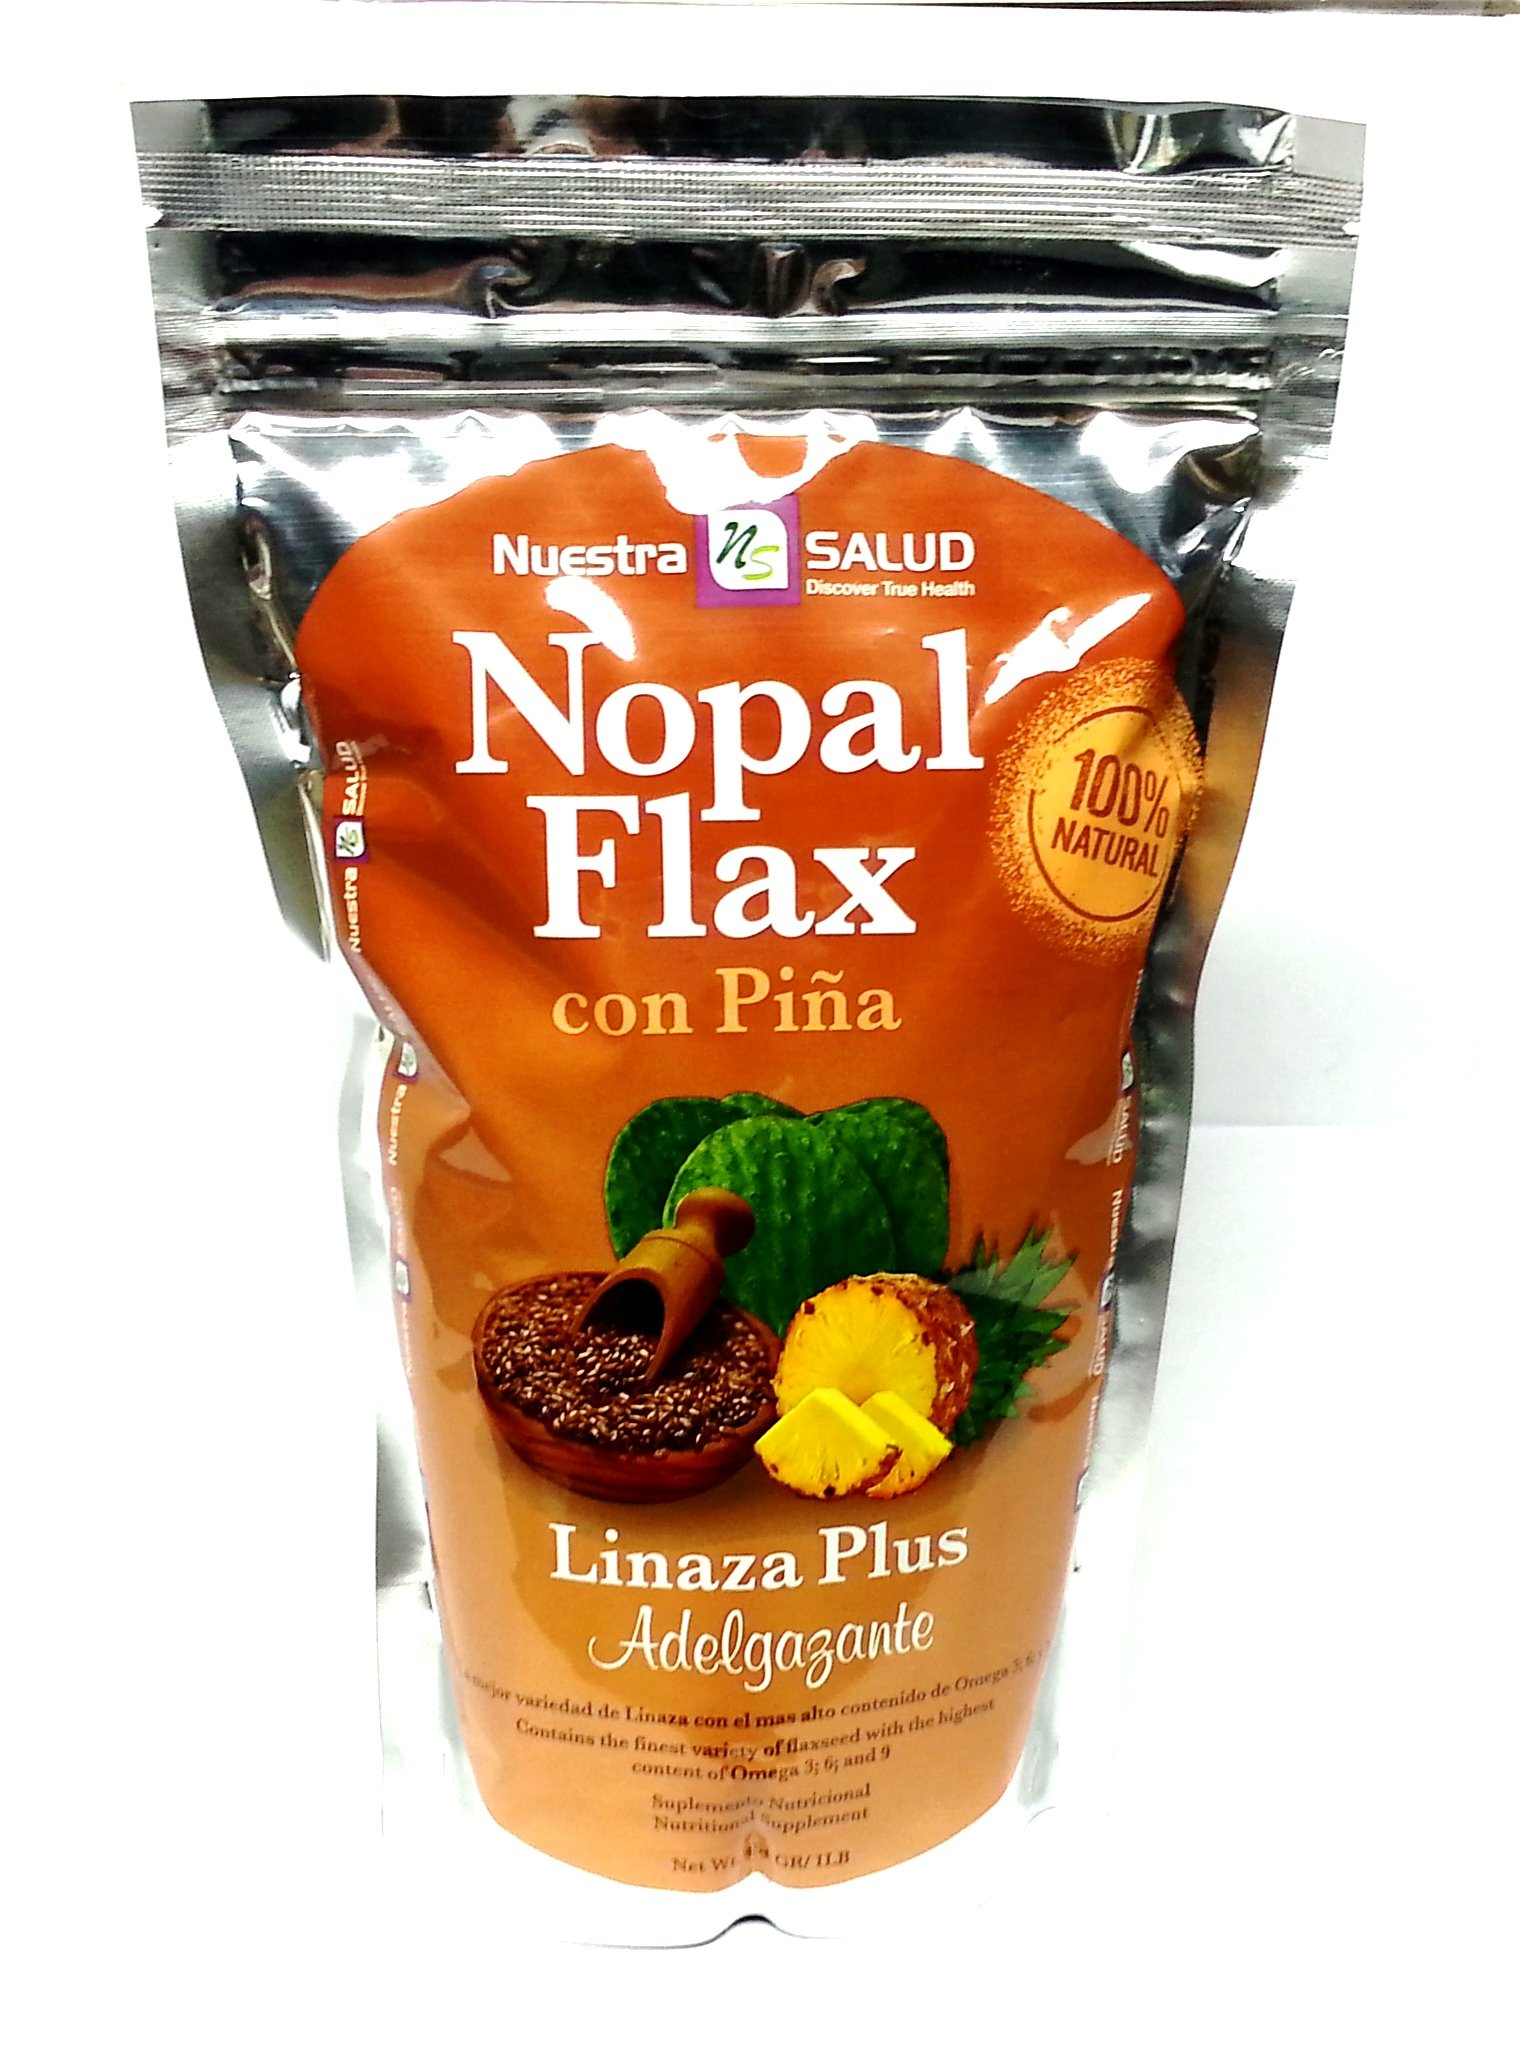 Nuestra Salud - Nopal Flax Seed Meal Plus with Pineapple- Organic Cold Milled Flax - 1lb/ 454g - 100% Natural Blend of Ground Linaza Seed and Superfoods